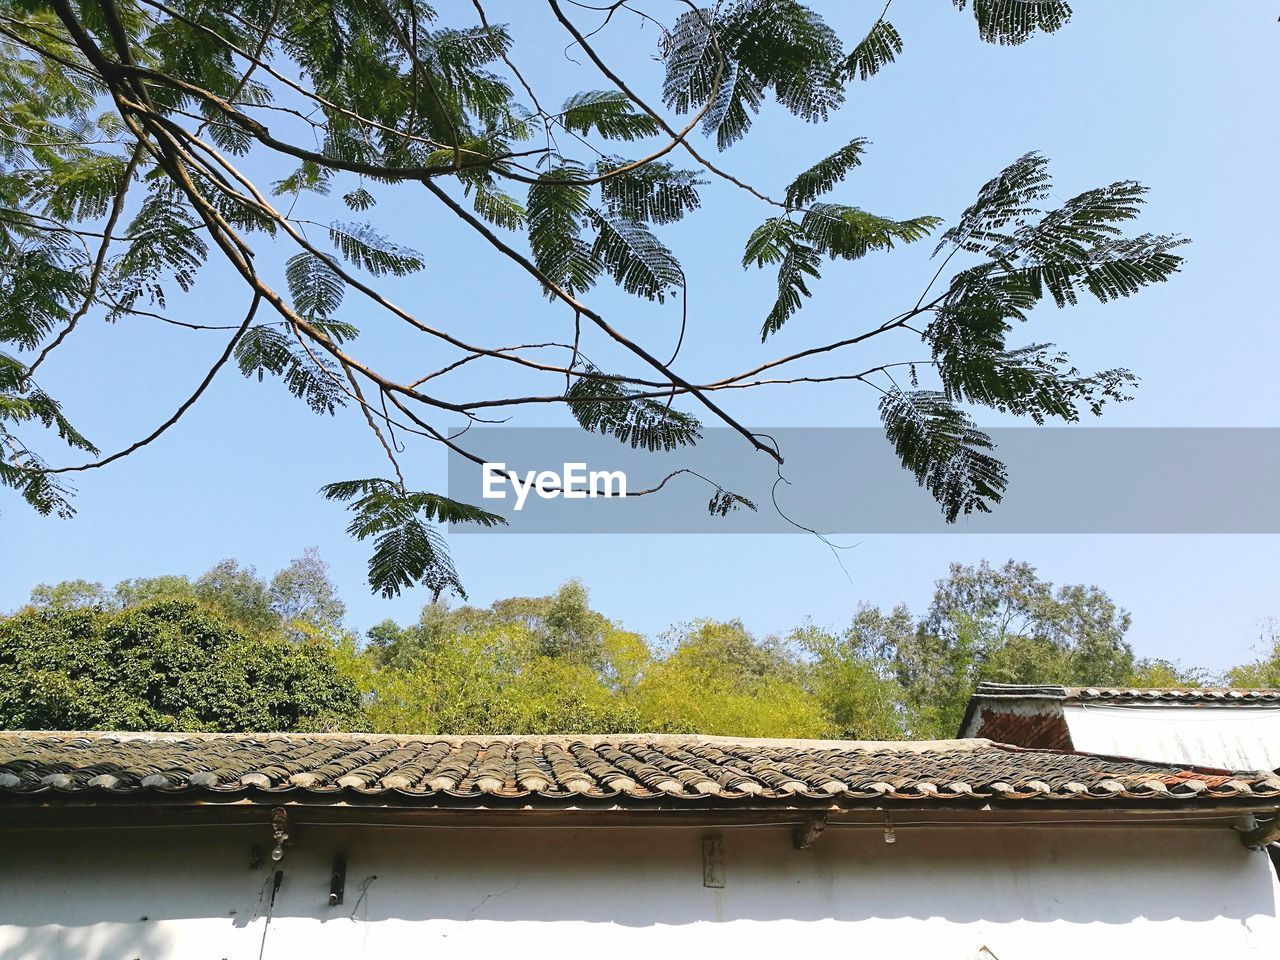 tree, roof, tiled roof, architecture, day, no people, growth, outdoors, sky, built structure, nature, building exterior, beauty in nature